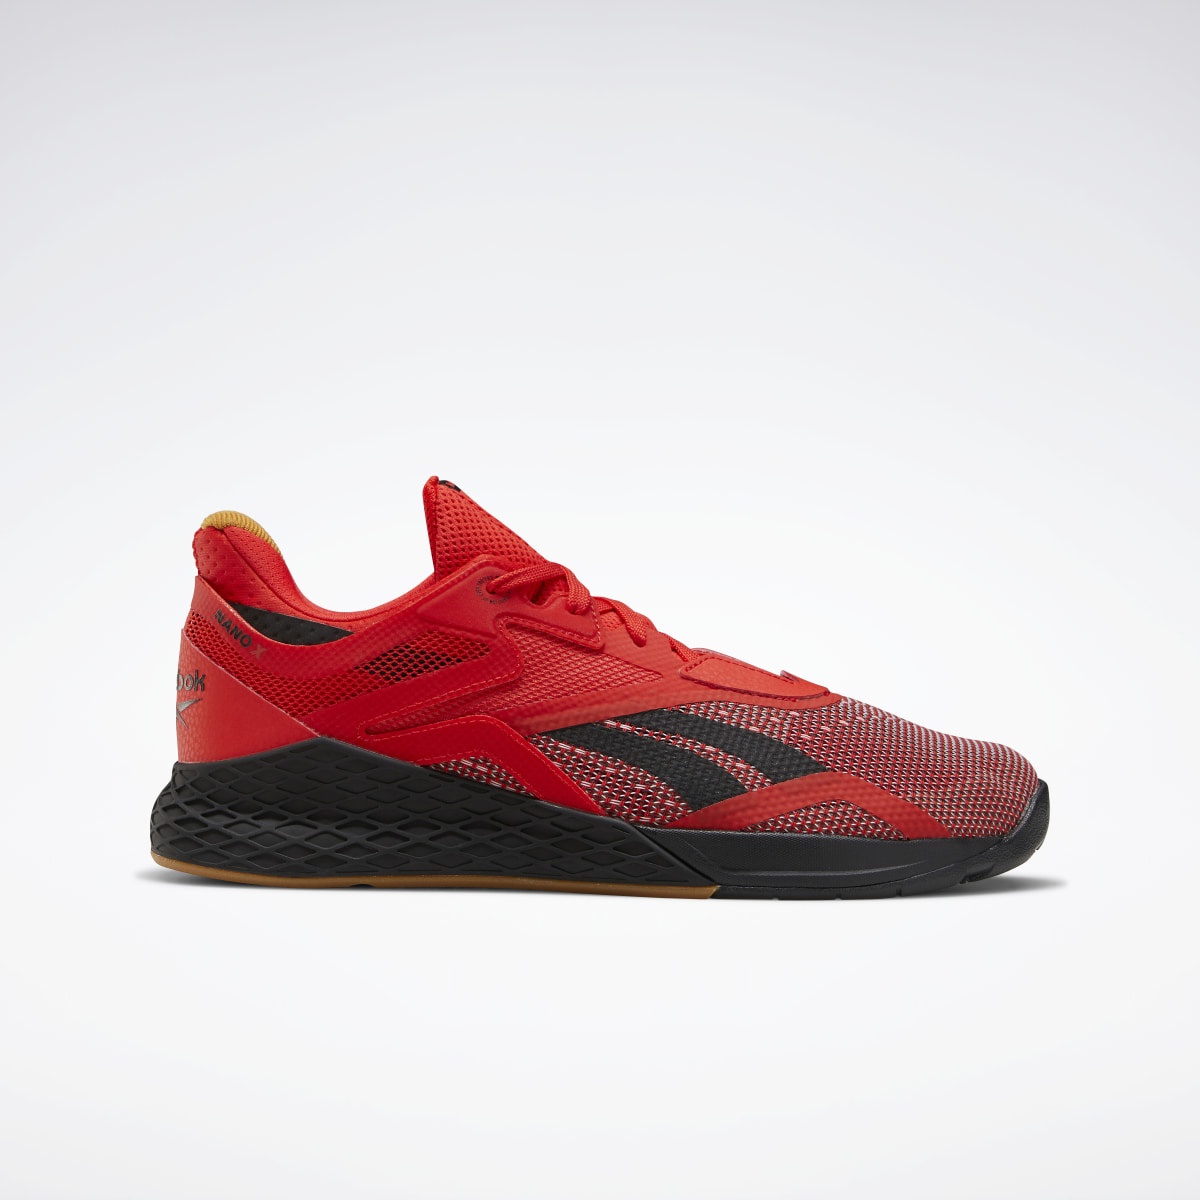 Reebok Nano X Men's Training Shoes